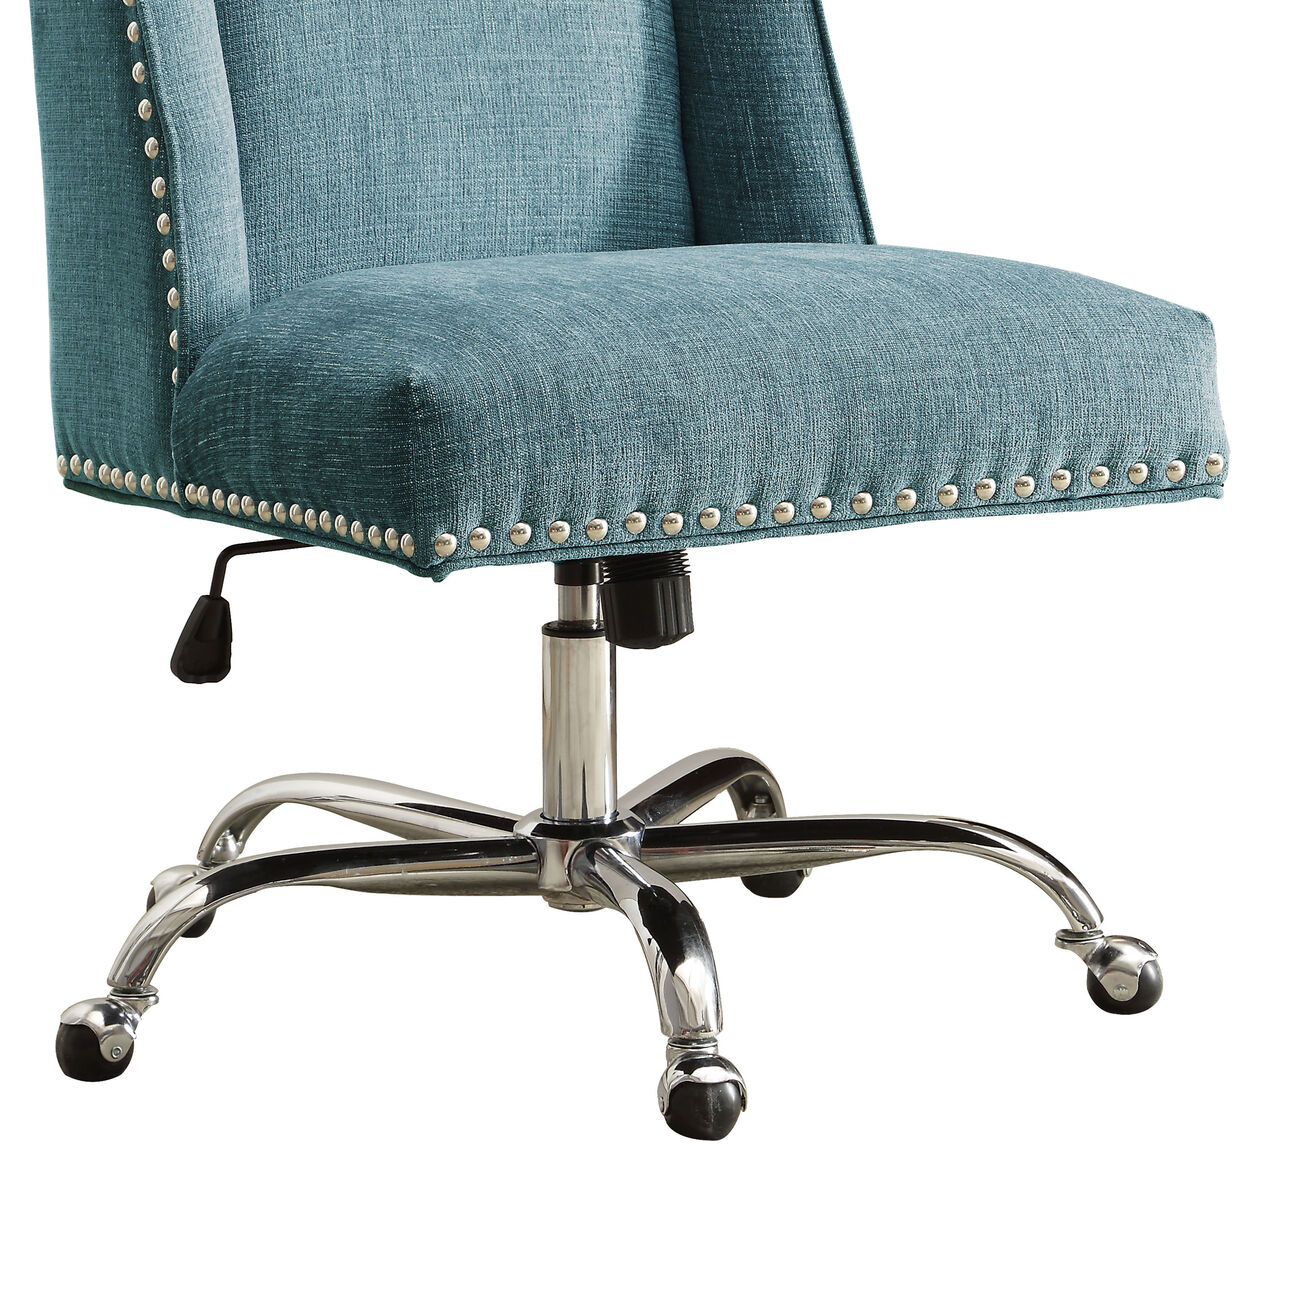 Height Adjustable Swivel Office Chair with Metal Base, Blue and Silver